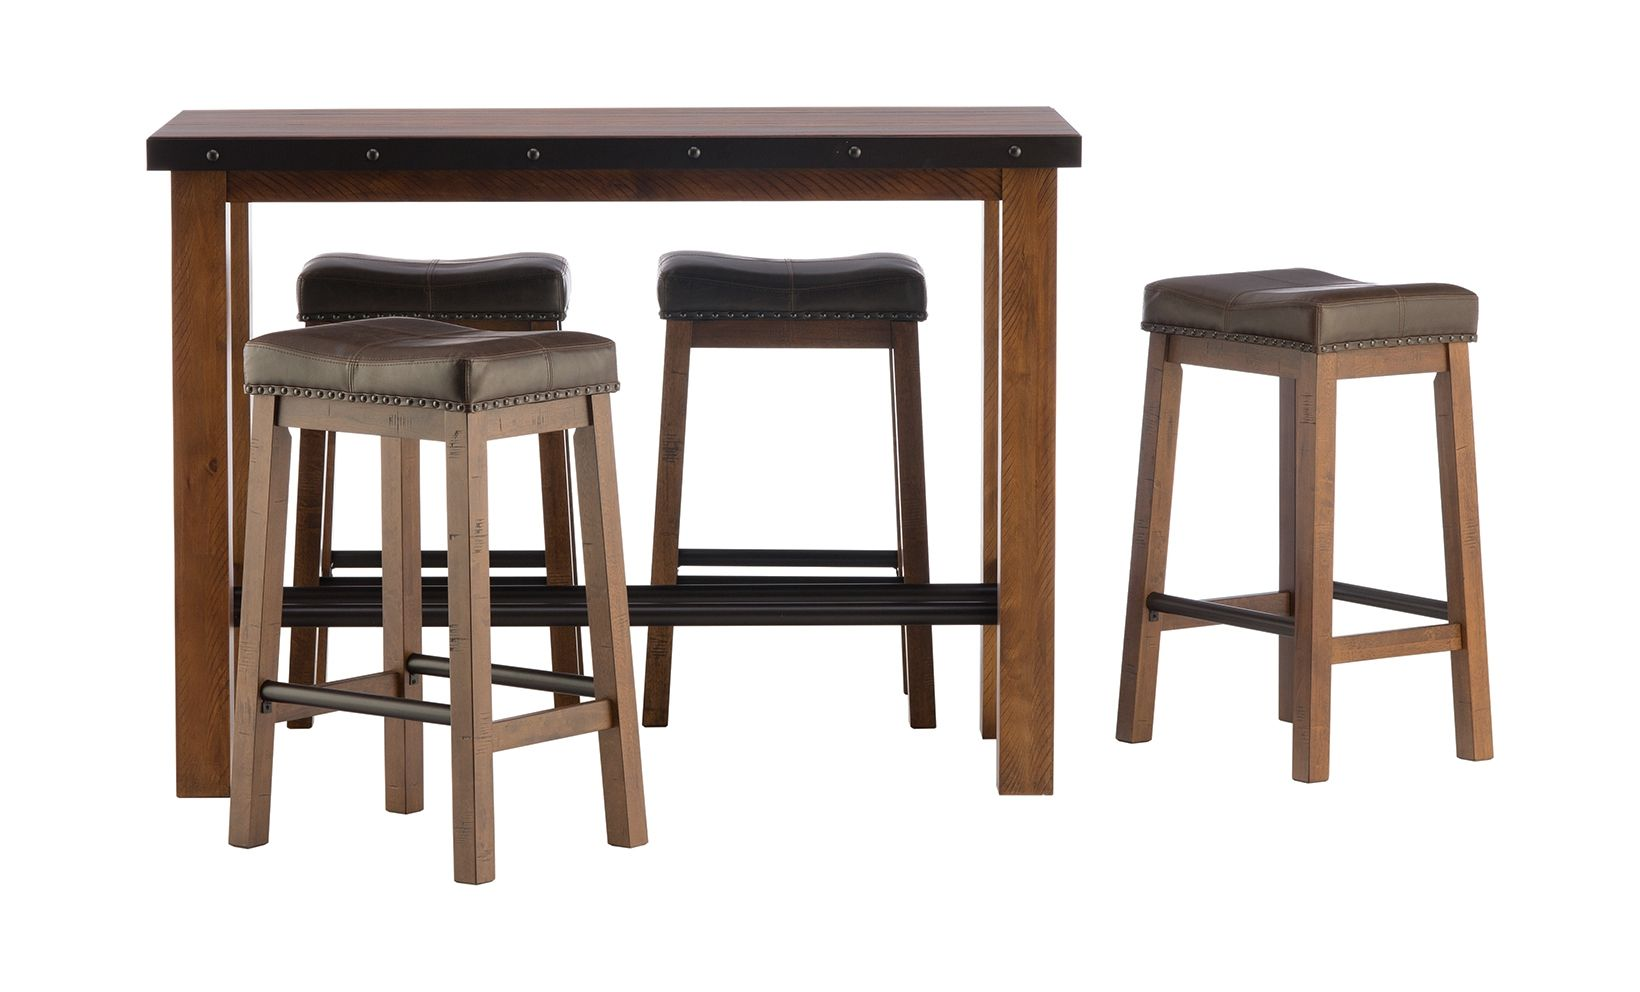 Taos pub table and stools rustic dining set metal accents and